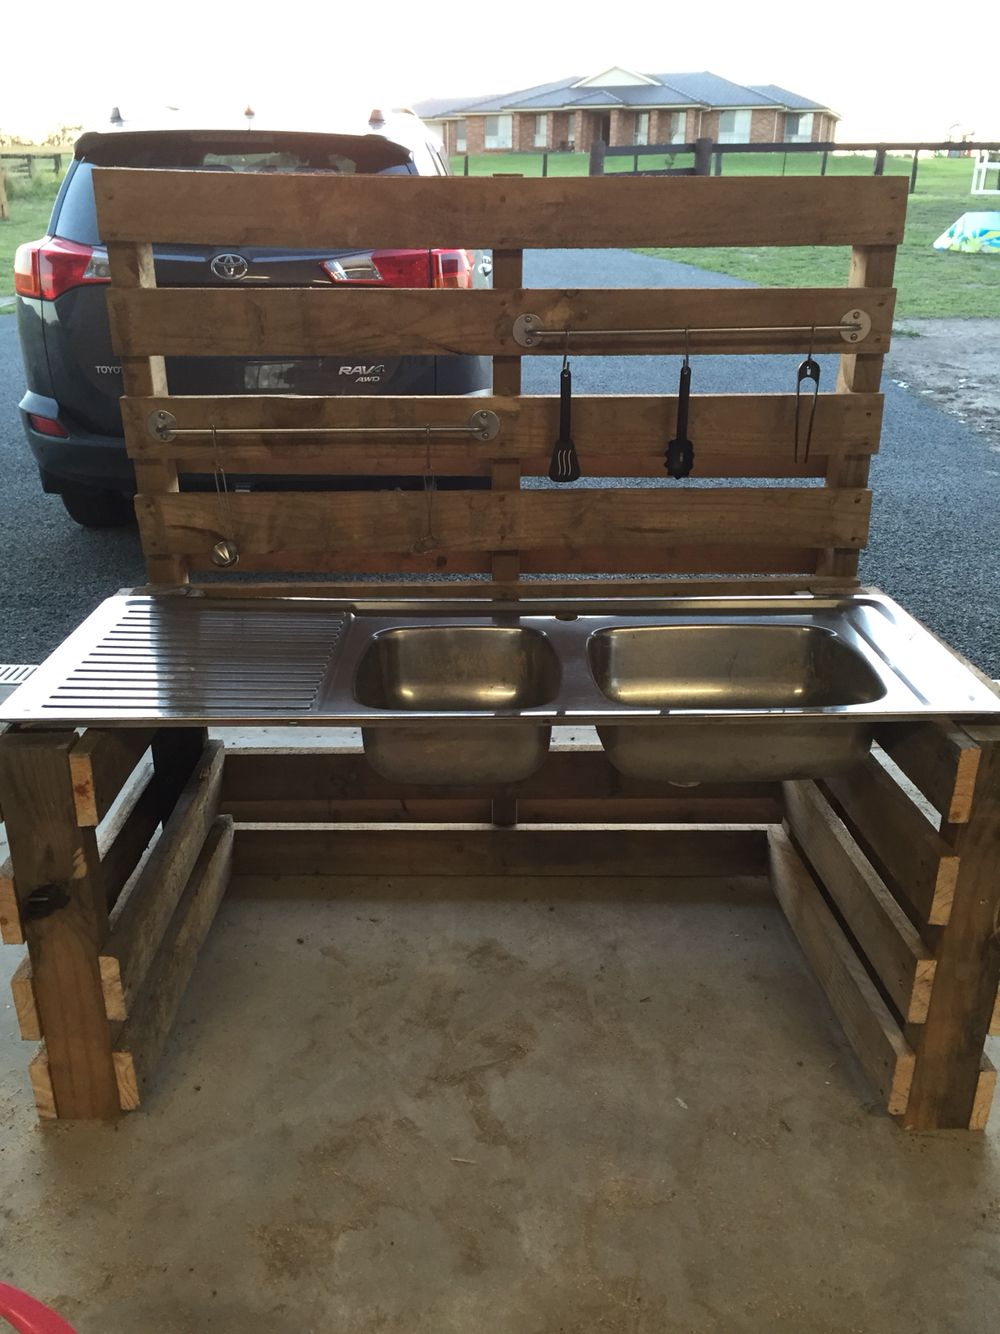 Mud kitchen upcycled pallet mud kitchen pallet kitchen counter with - Outdoor Mud Kitchen Made From Pallets And Super Easy